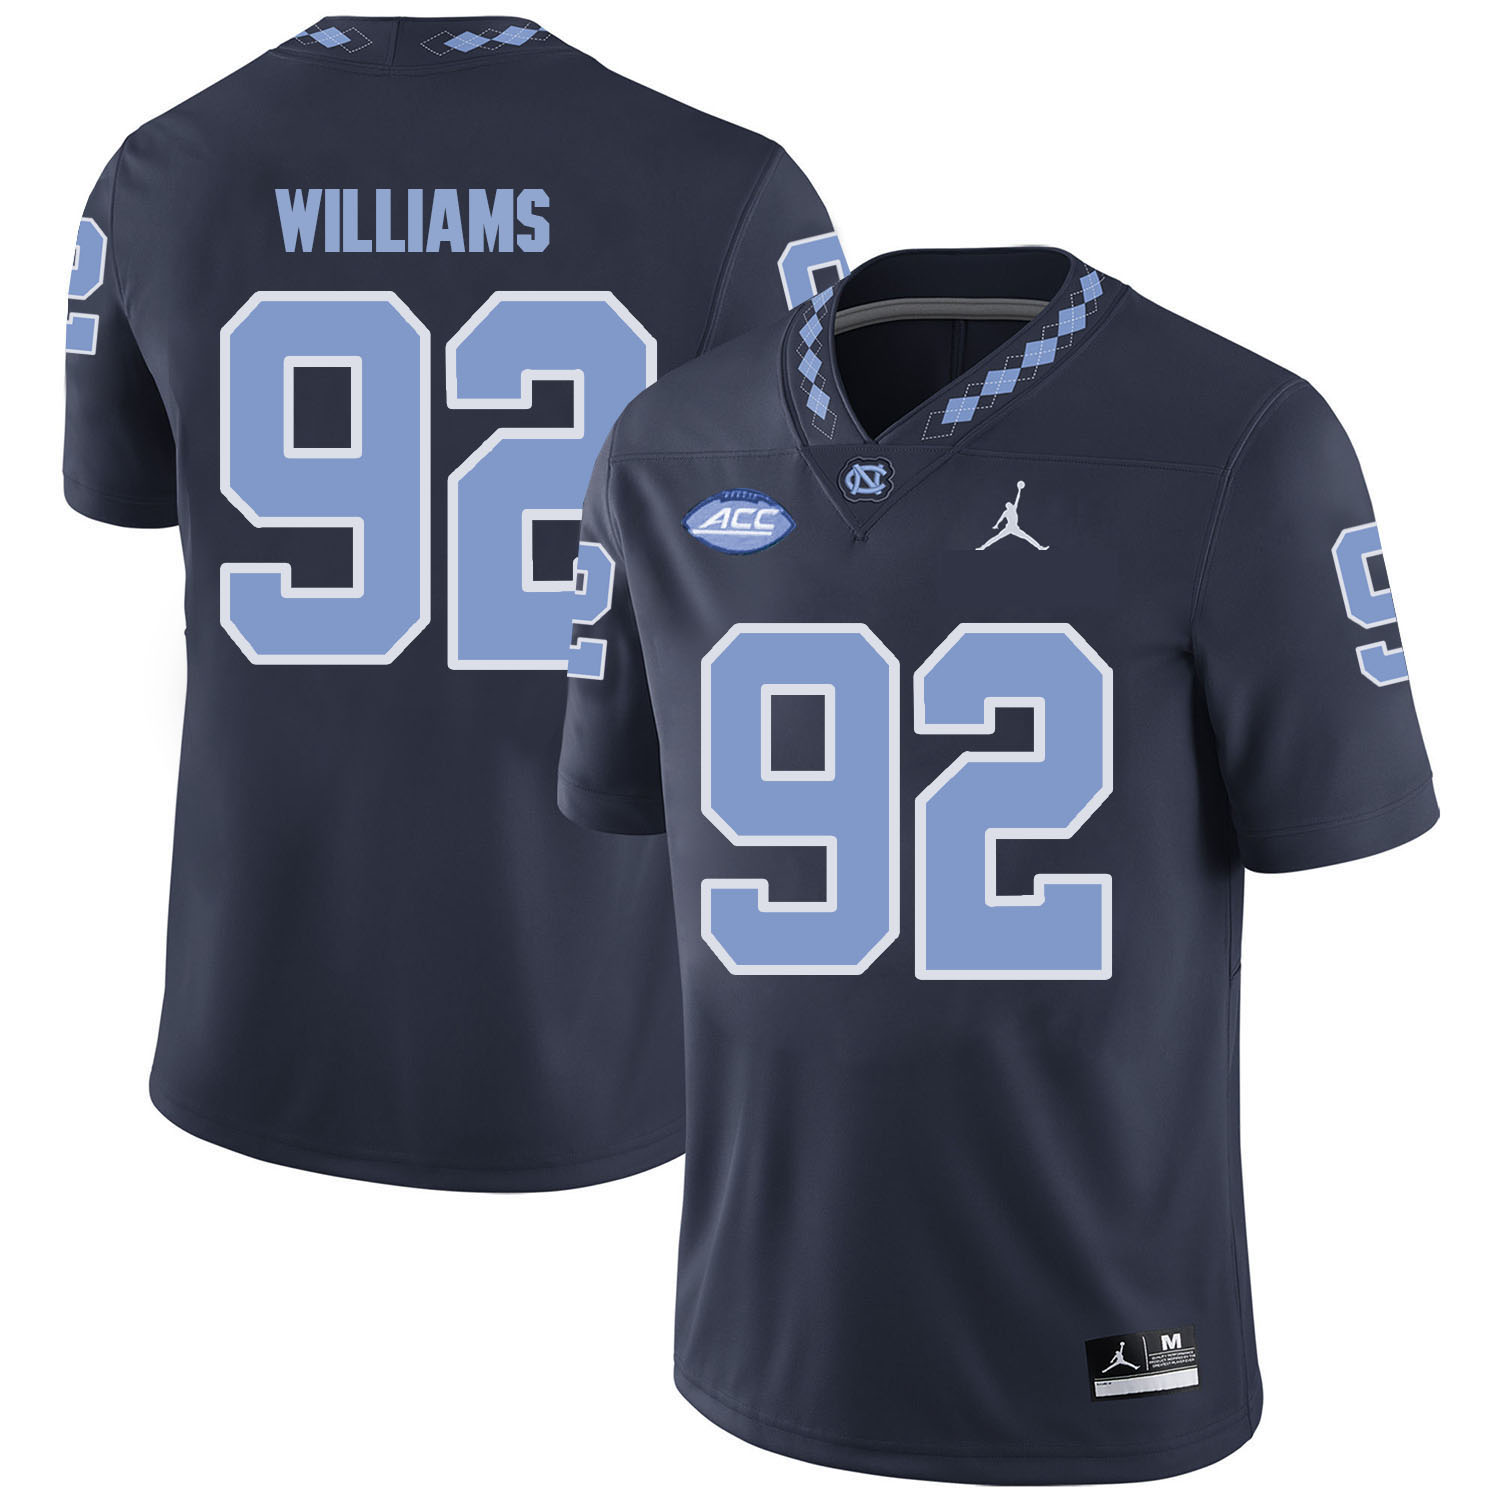 North Carolina Tar Heels 92 Sylvester Williams Black College Football Jersey